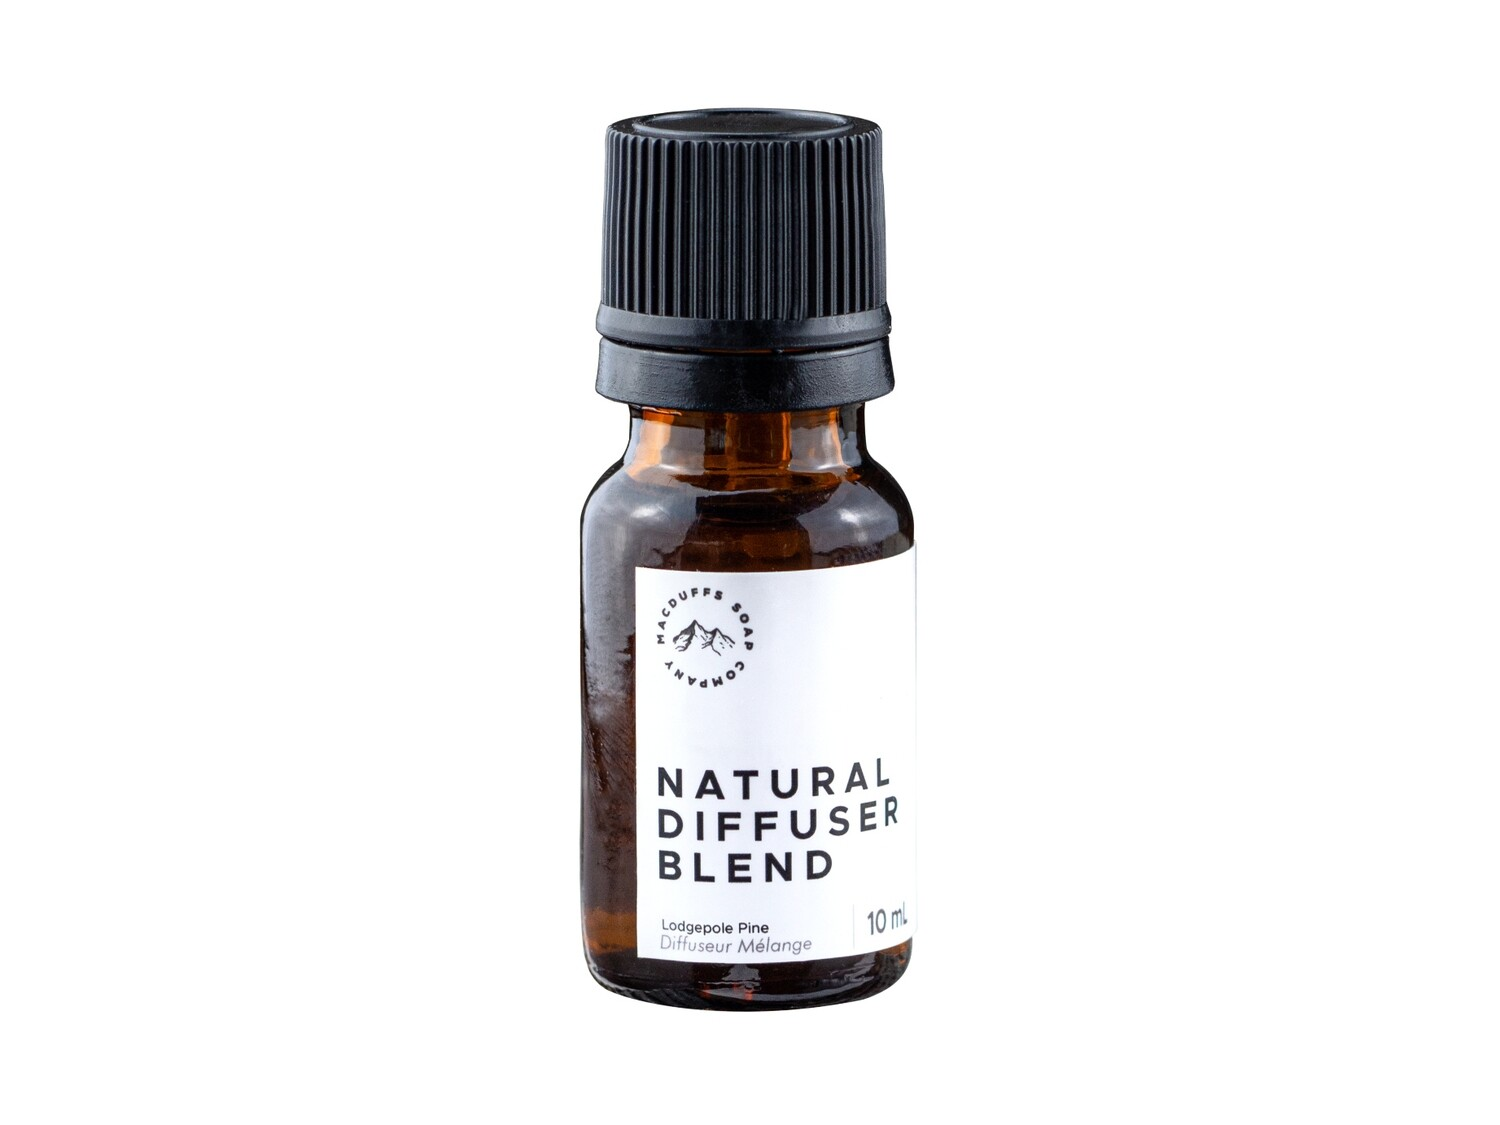 Lodgepole Pine Diffuser Blend